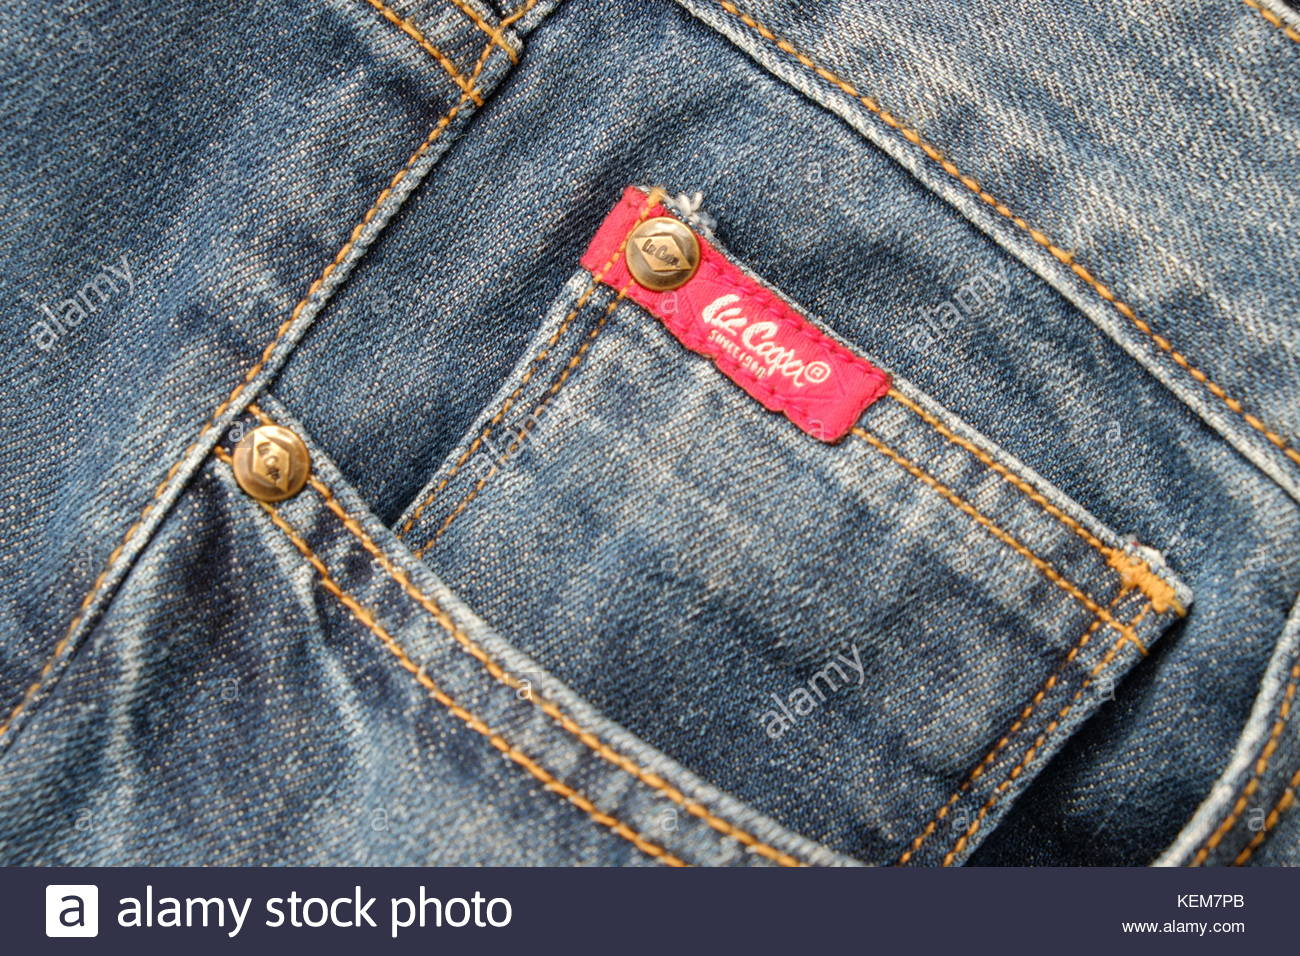 lee cooper jeans red tag stock photo 163943651 alamy